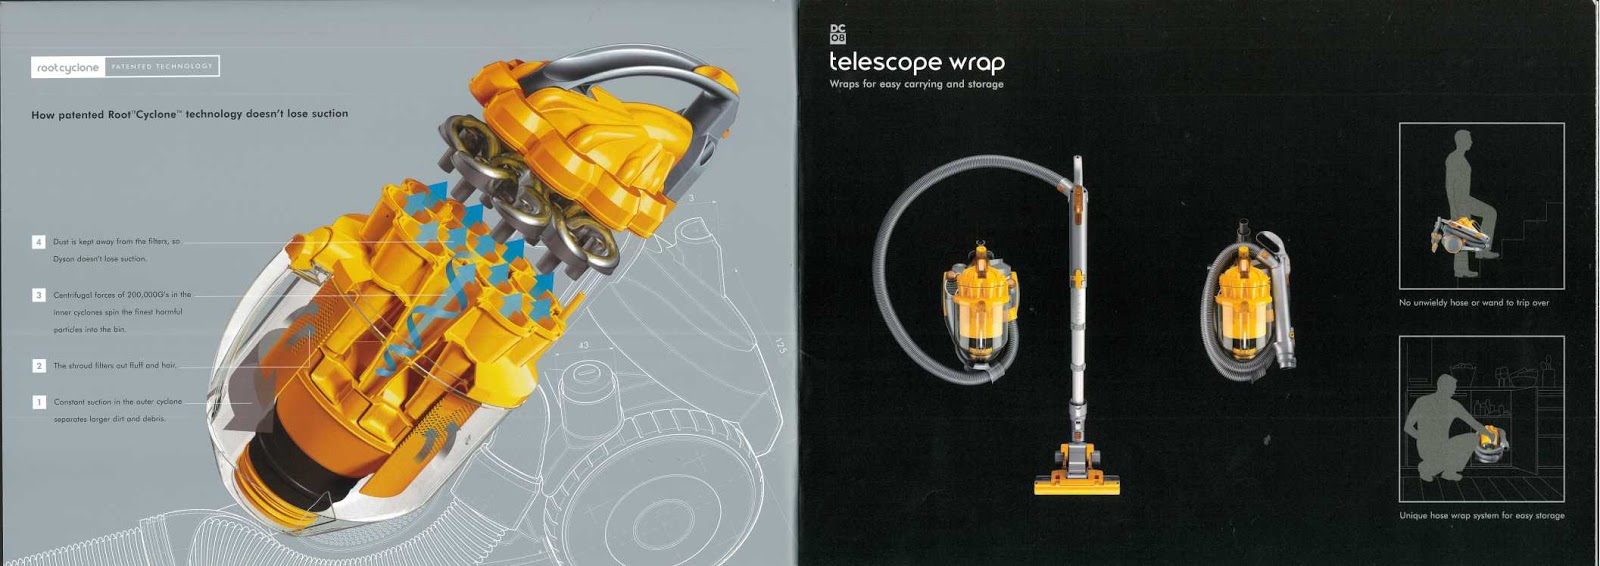 This lovely A4 brochure details the newly launched Dyson DC08 Telescope  Wrap! Wish the bins looked so shiny nowadays!